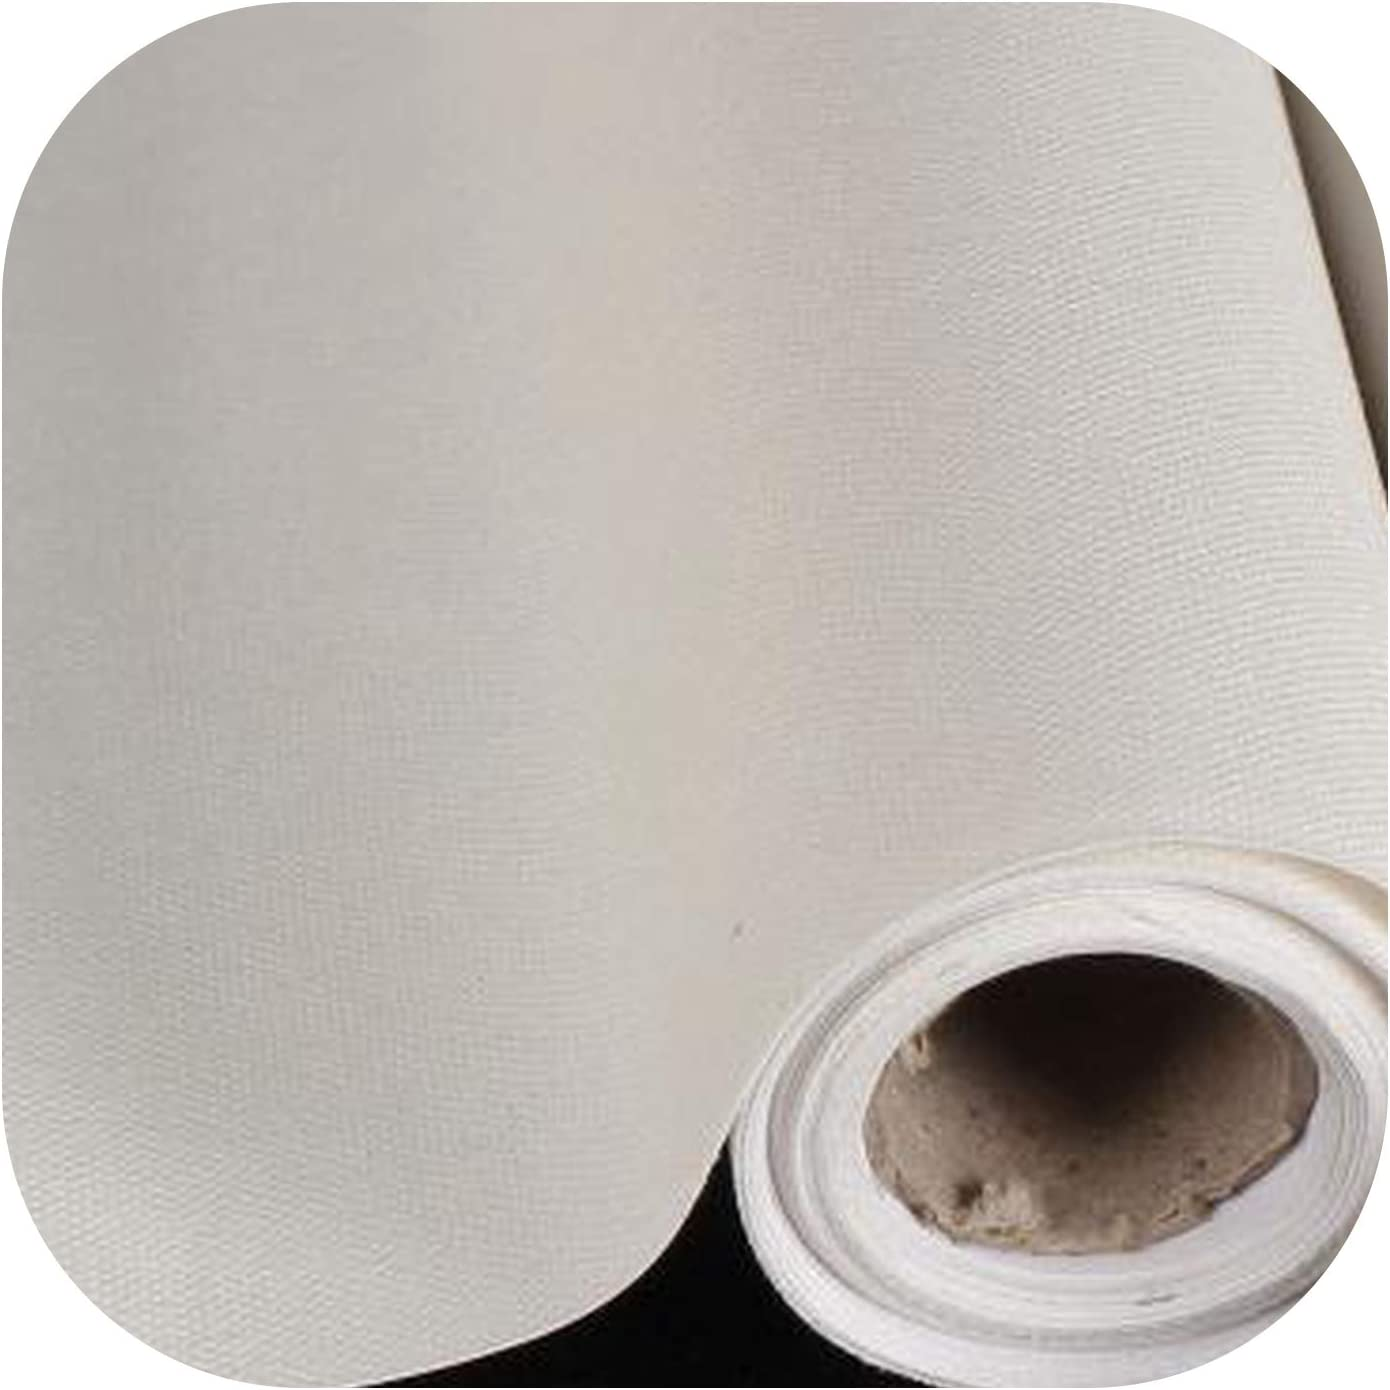 Primed Canvas Roll Blank Linen Blend High Quality Artist Oil Painting Supplies